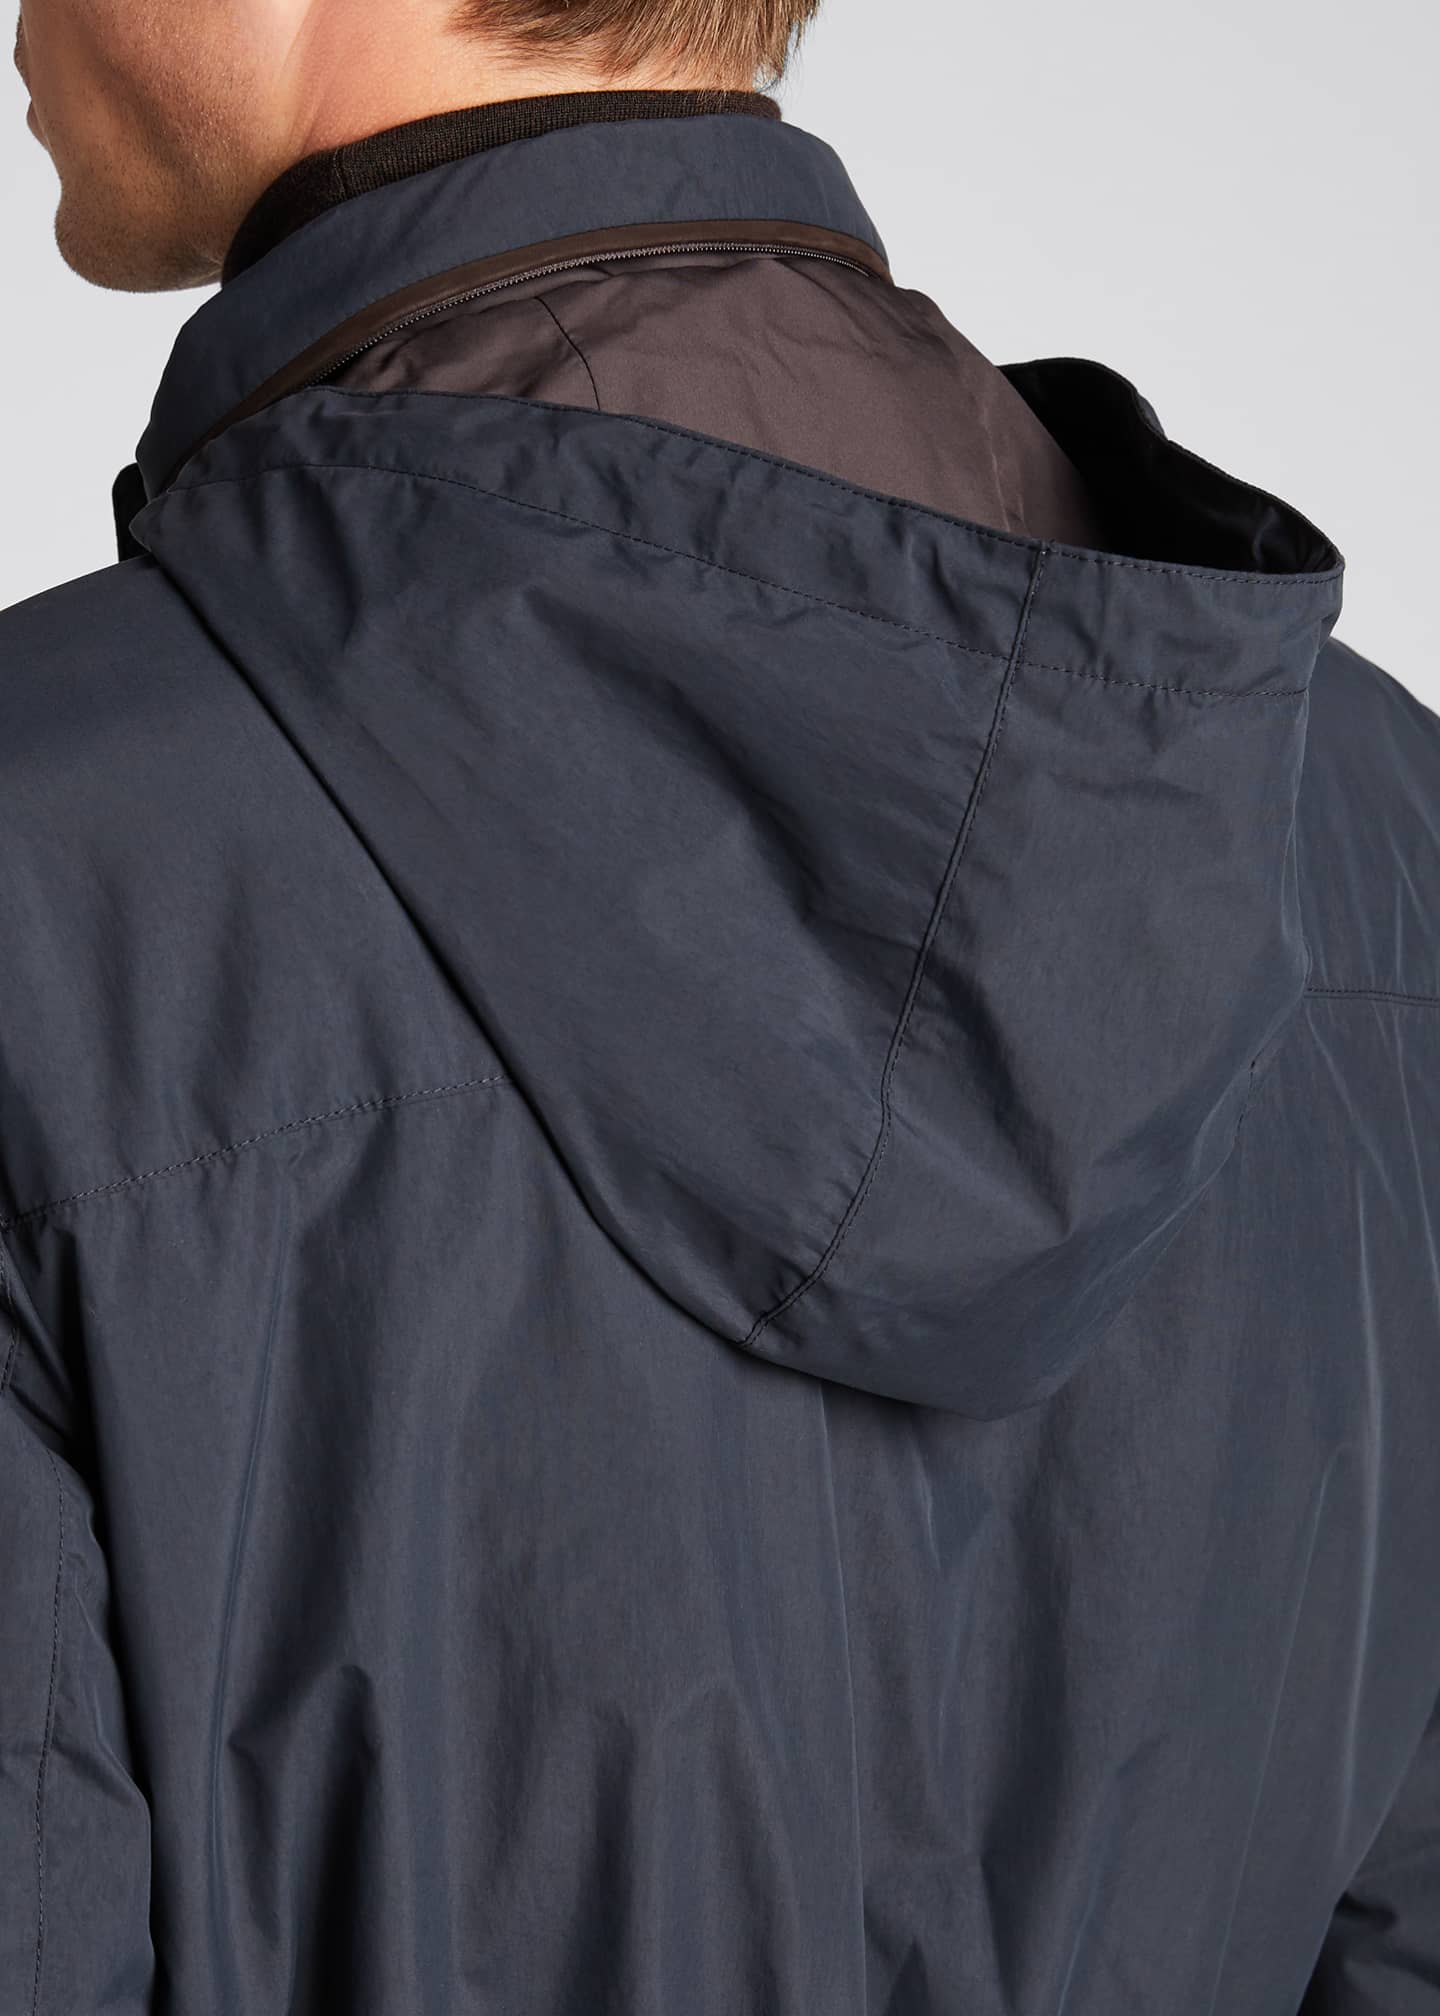 Image 4 of 5: Men's Stratos Nylon Field Jacket